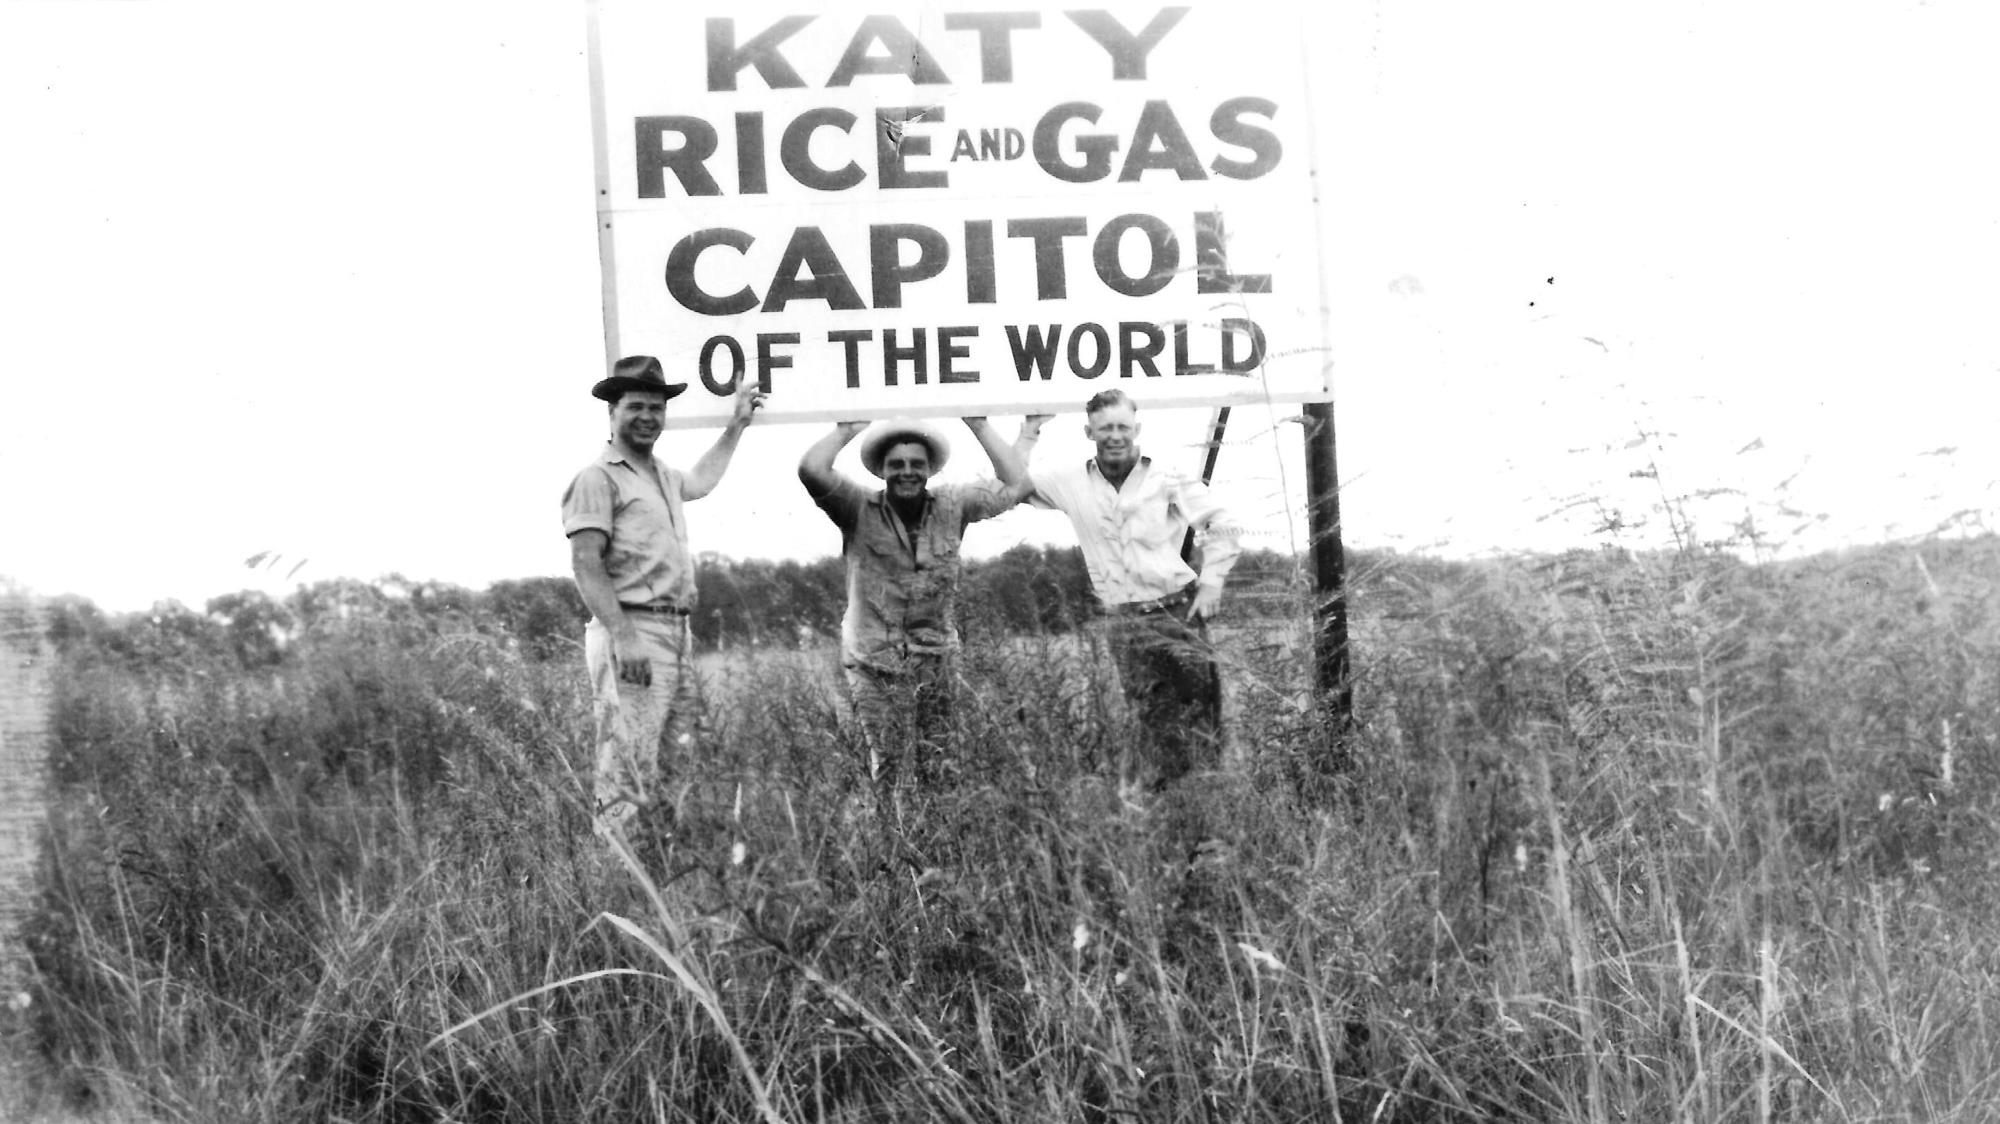 rice and gas capitol of the world 2